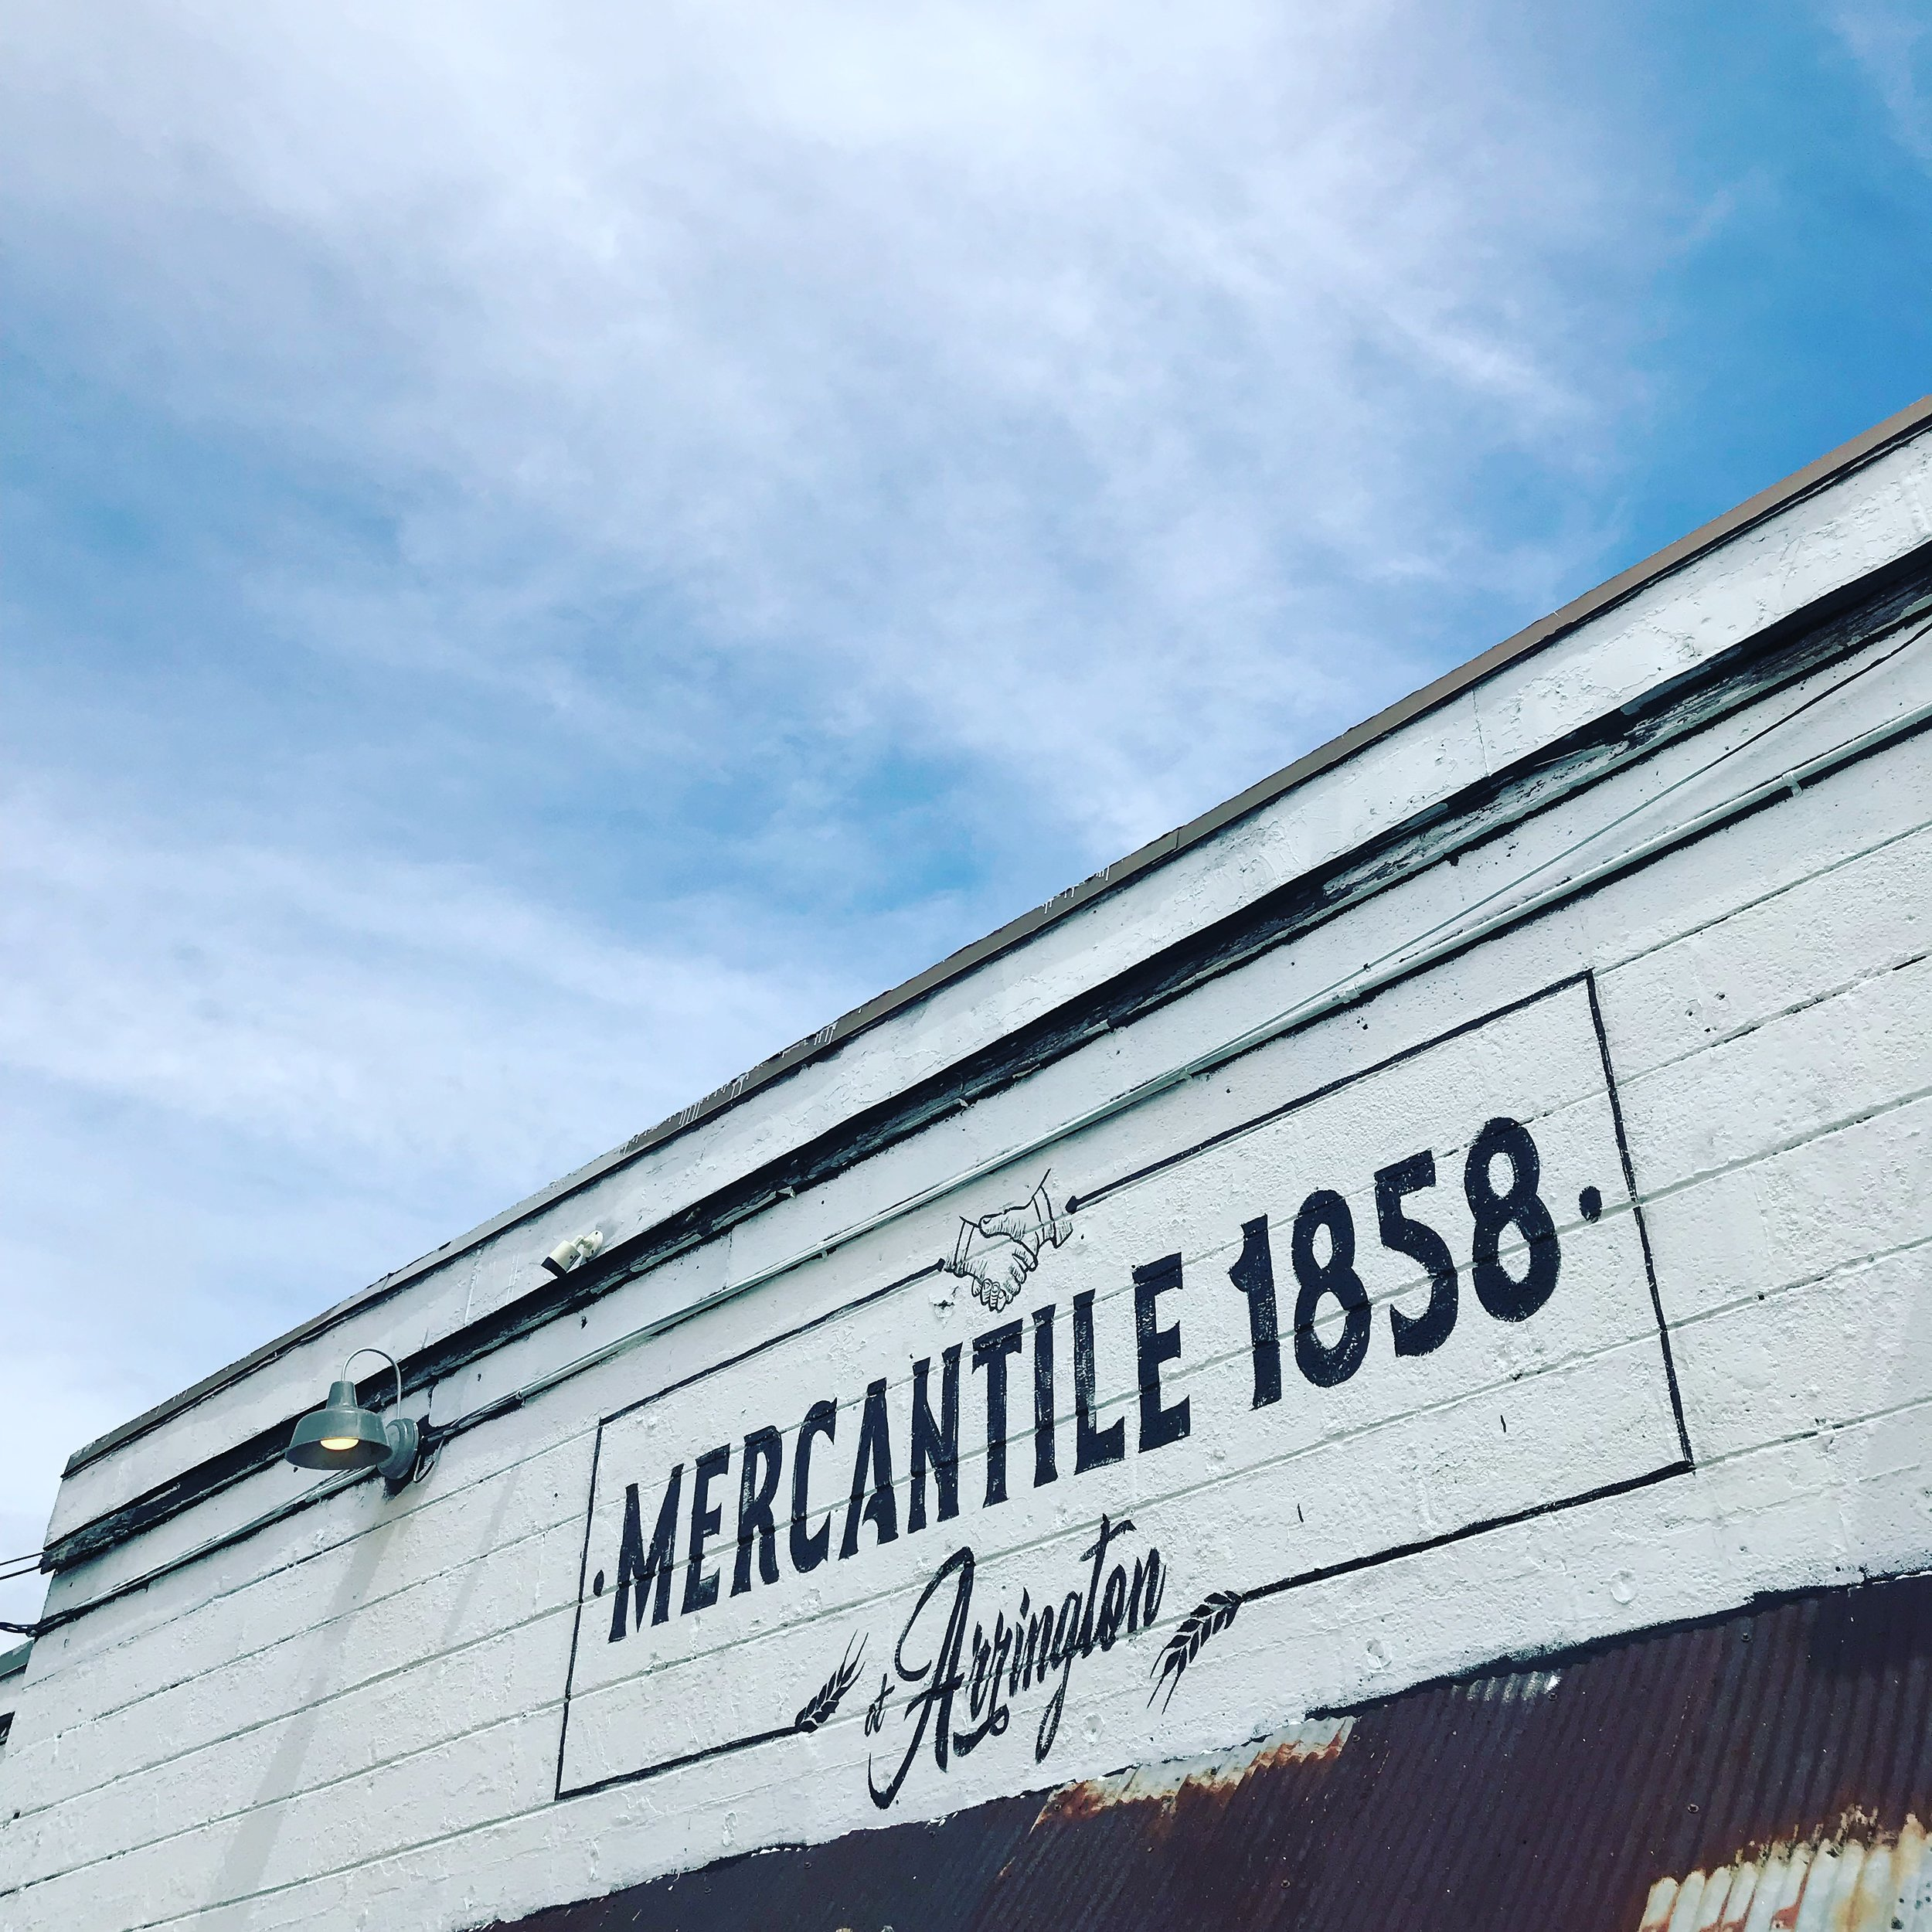 Hand-painted sign for Mercantile 1858